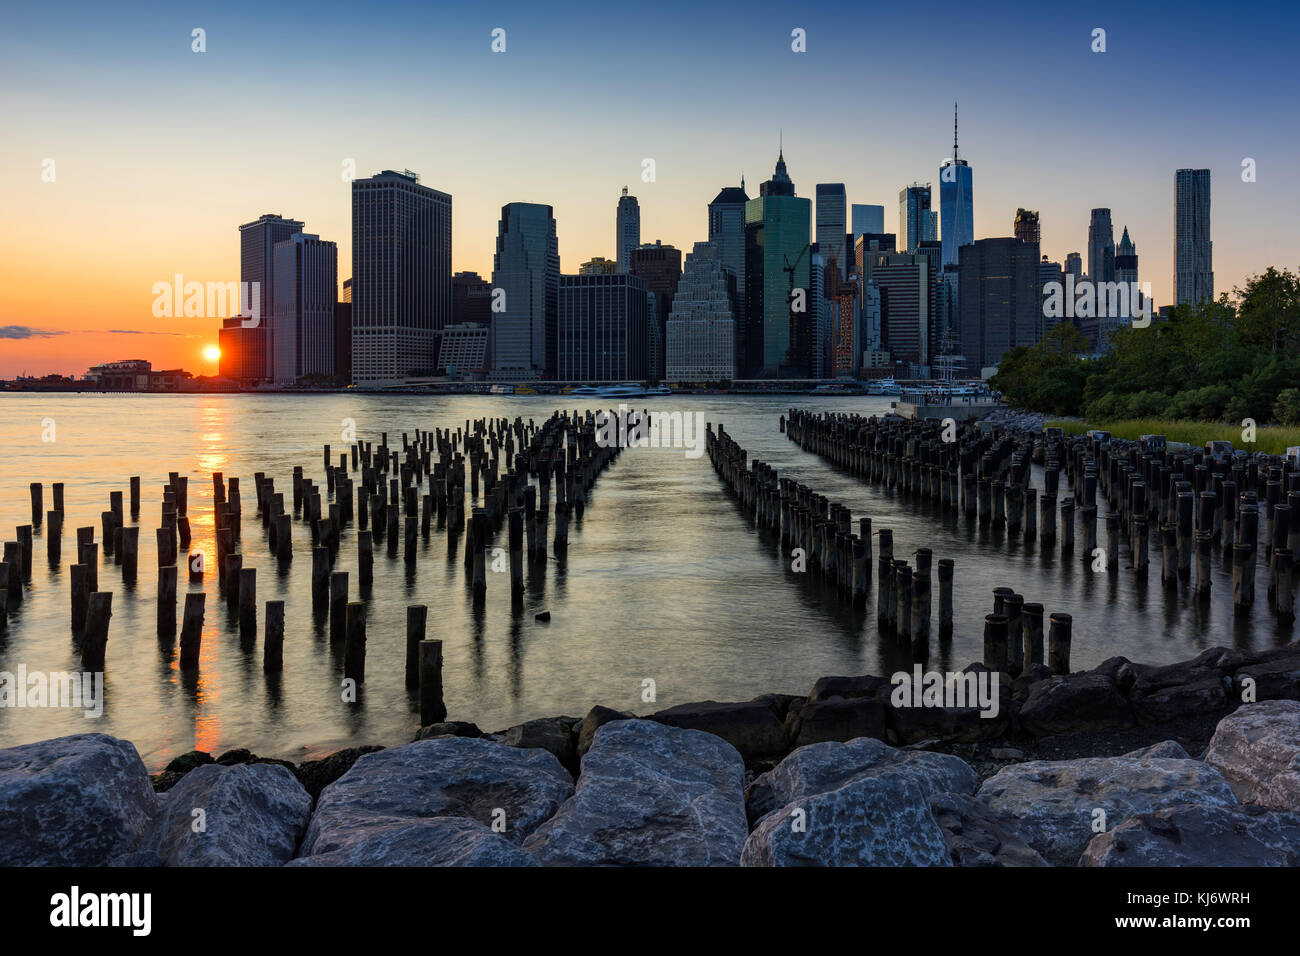 Gratte-ciel de Manhattan et pieux en bois au coucher du soleil de Brooklyn Bridge Park. Manhattan, New York City Photo Stock